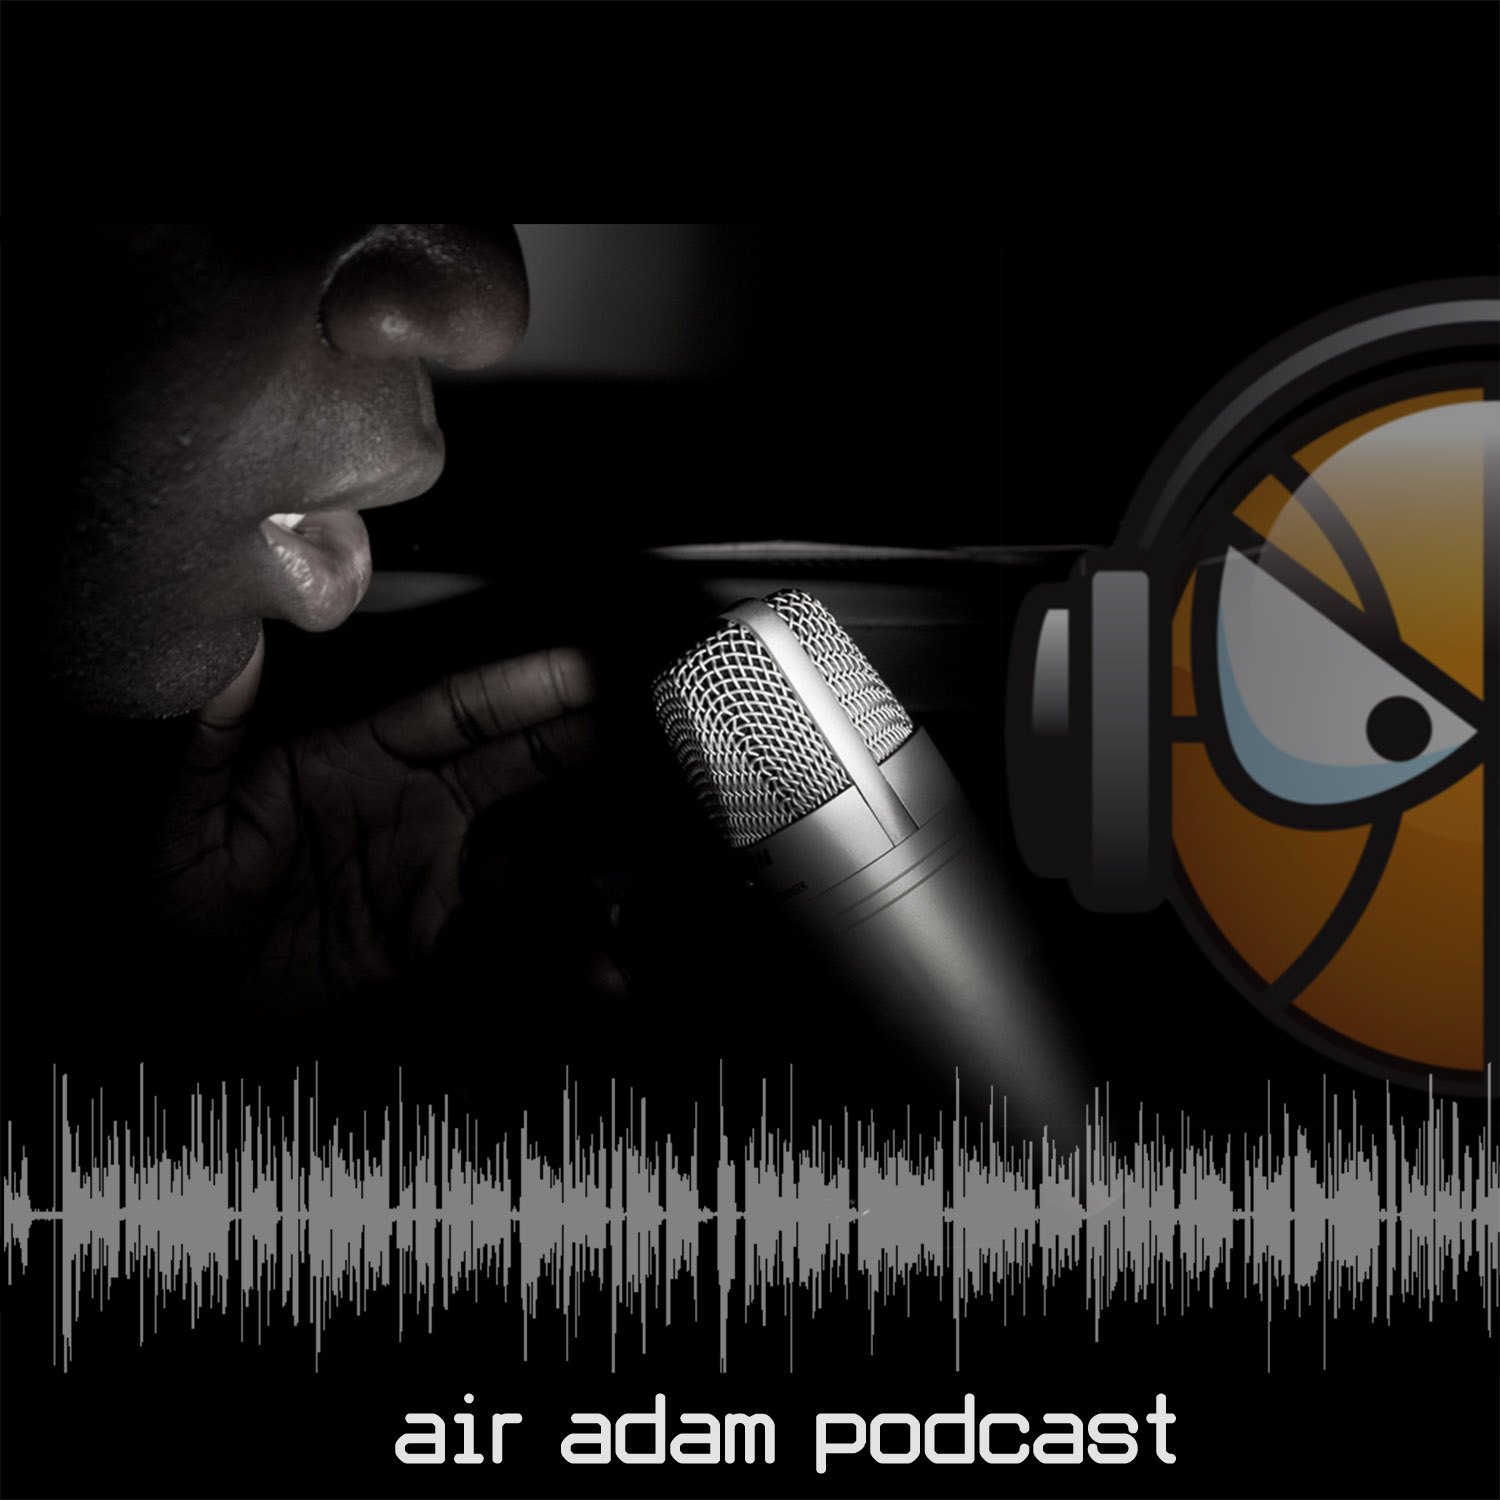 Air Adam Podcast